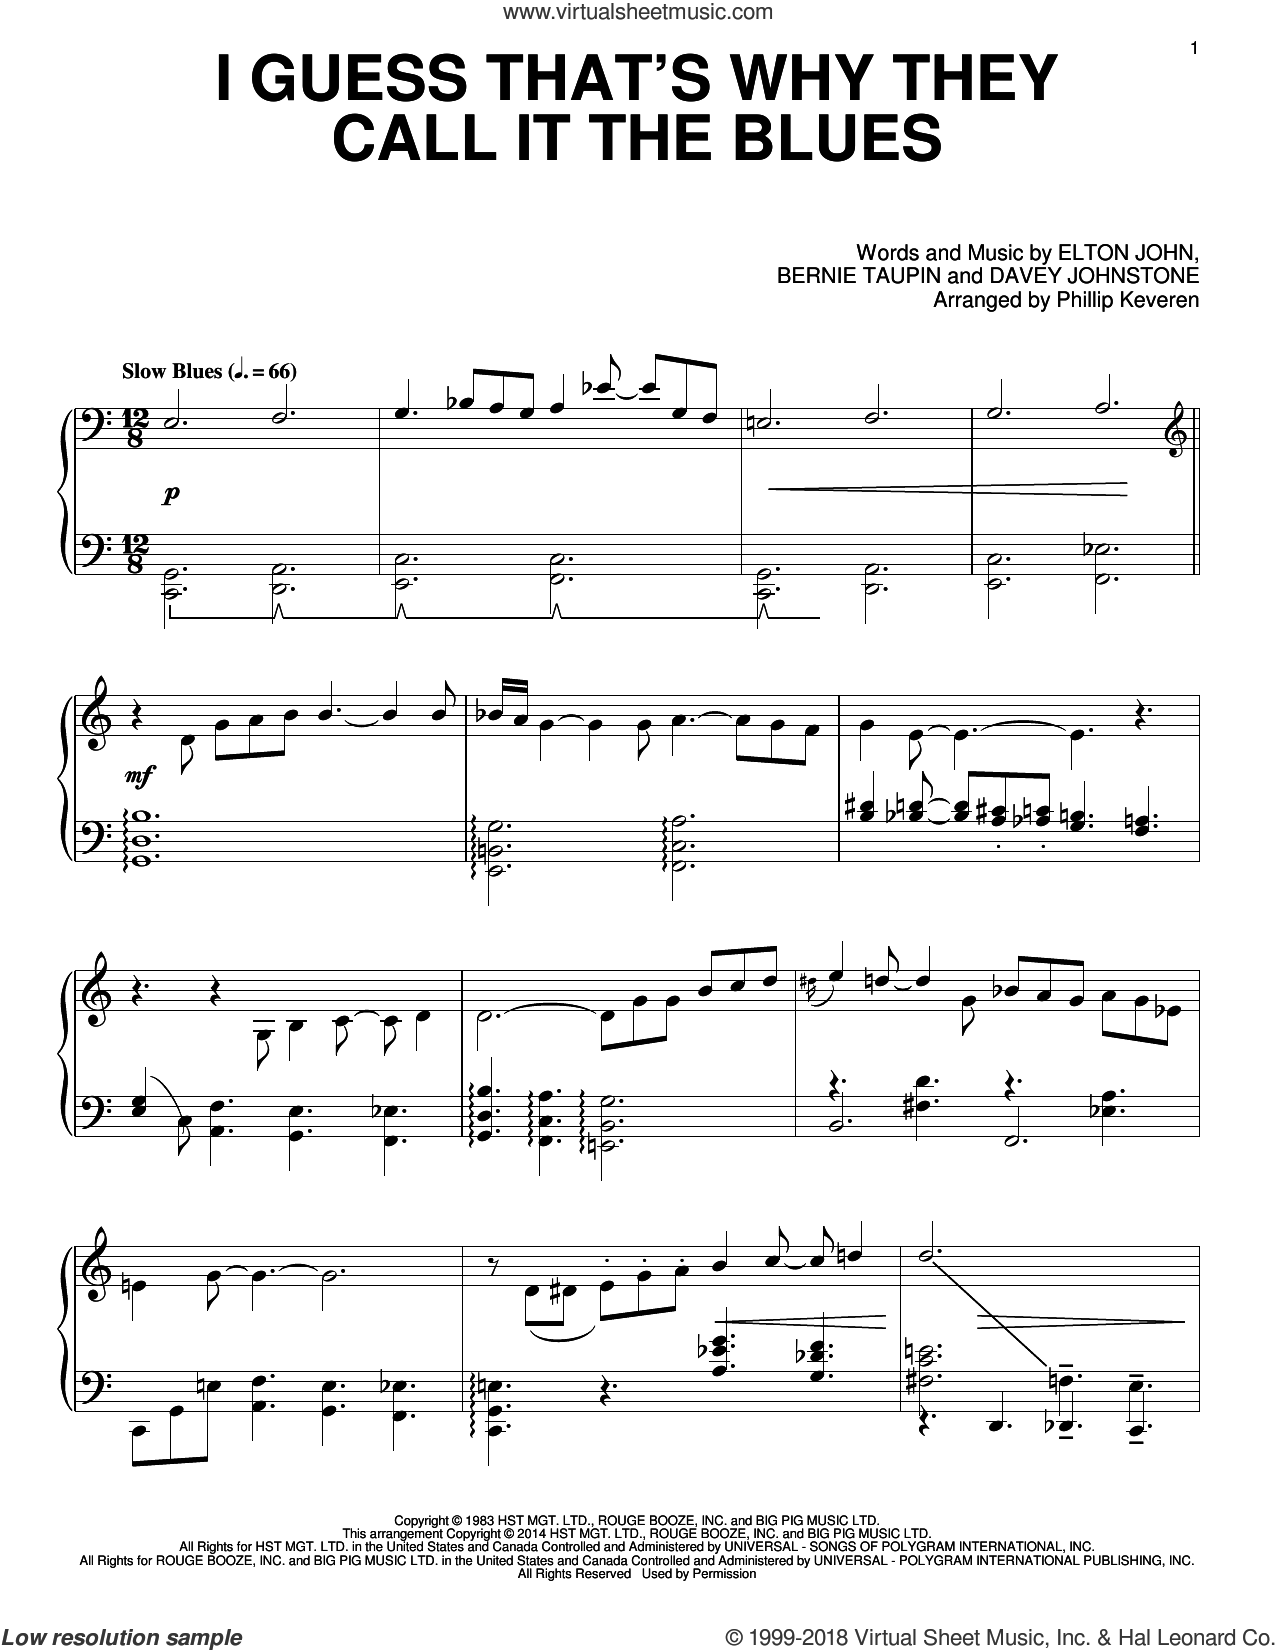 I Guess That's Why They Call It The Blues sheet music for piano solo by Davey Johnstone